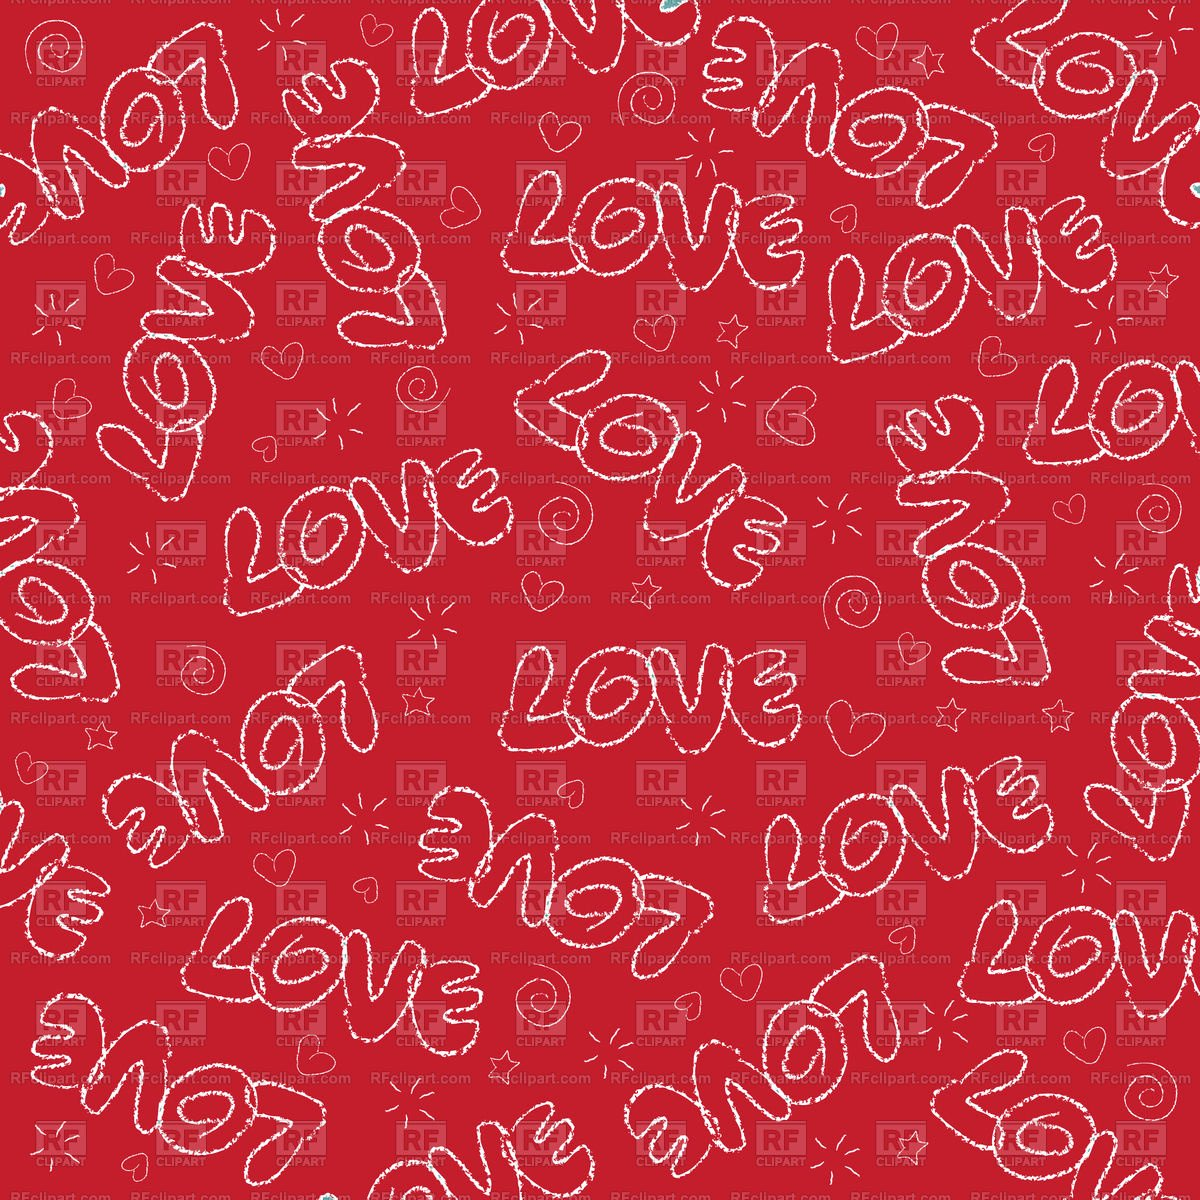 Free Backgrounds for Word Beautiful Red Background Covered with Word Love Free Vector Image